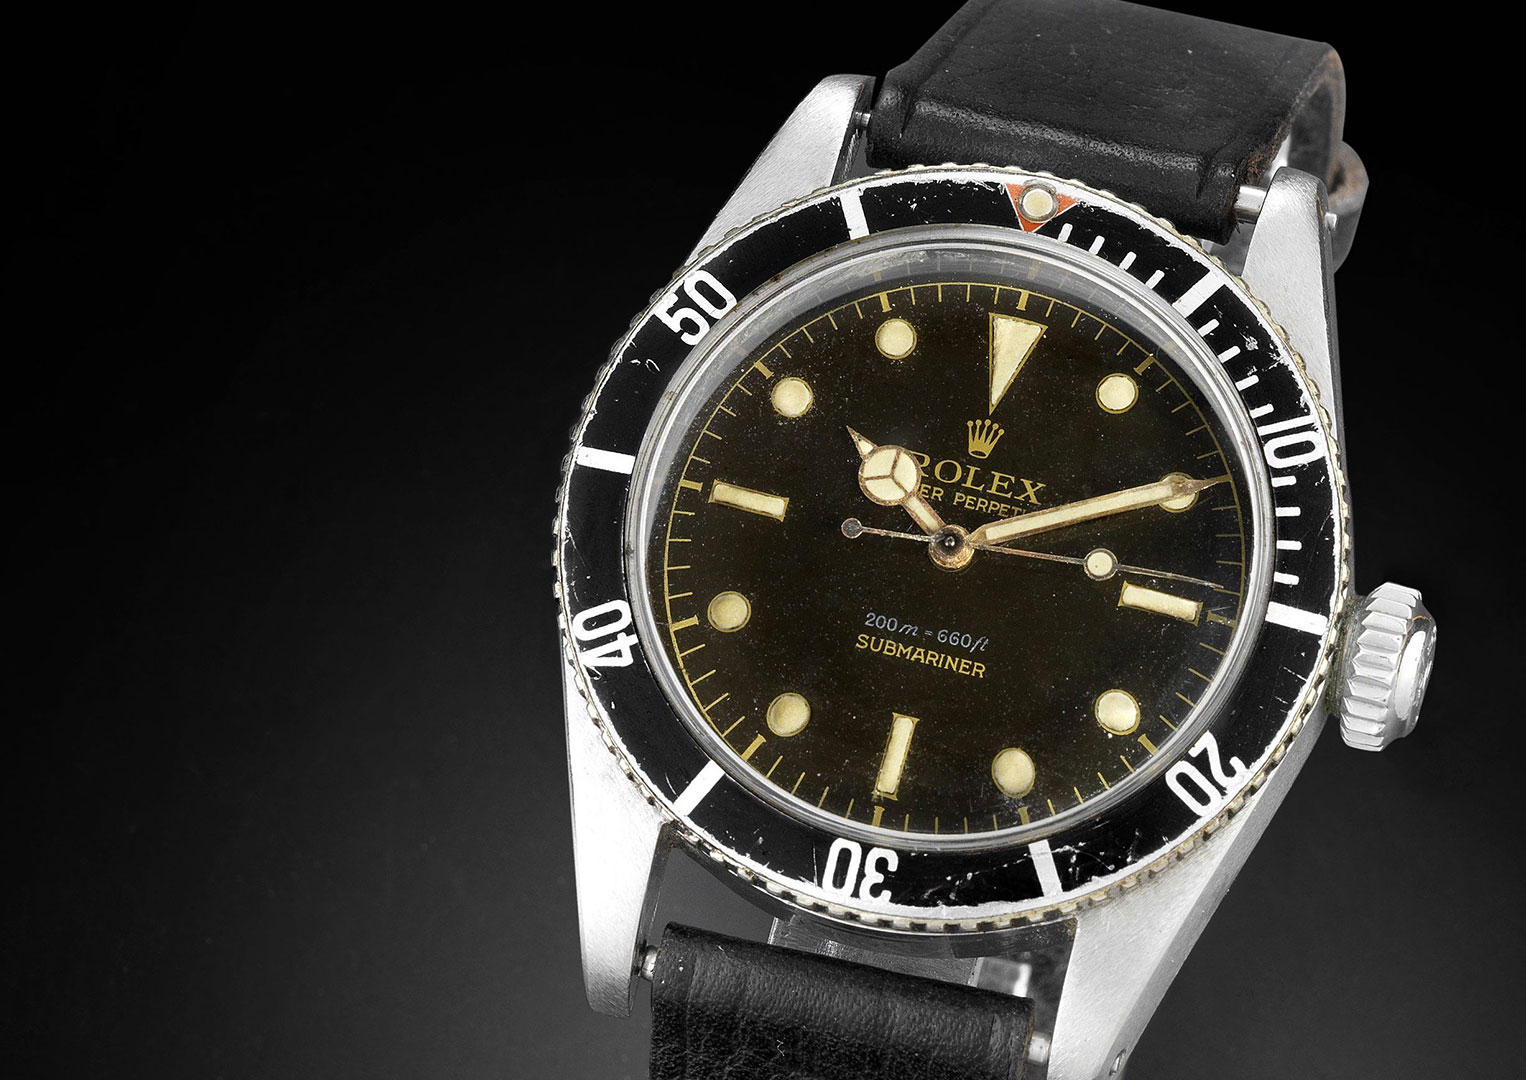 Bond wore a Rolex Submariner Reference 6538 in the first three films. Image courtesy of Bonhams.